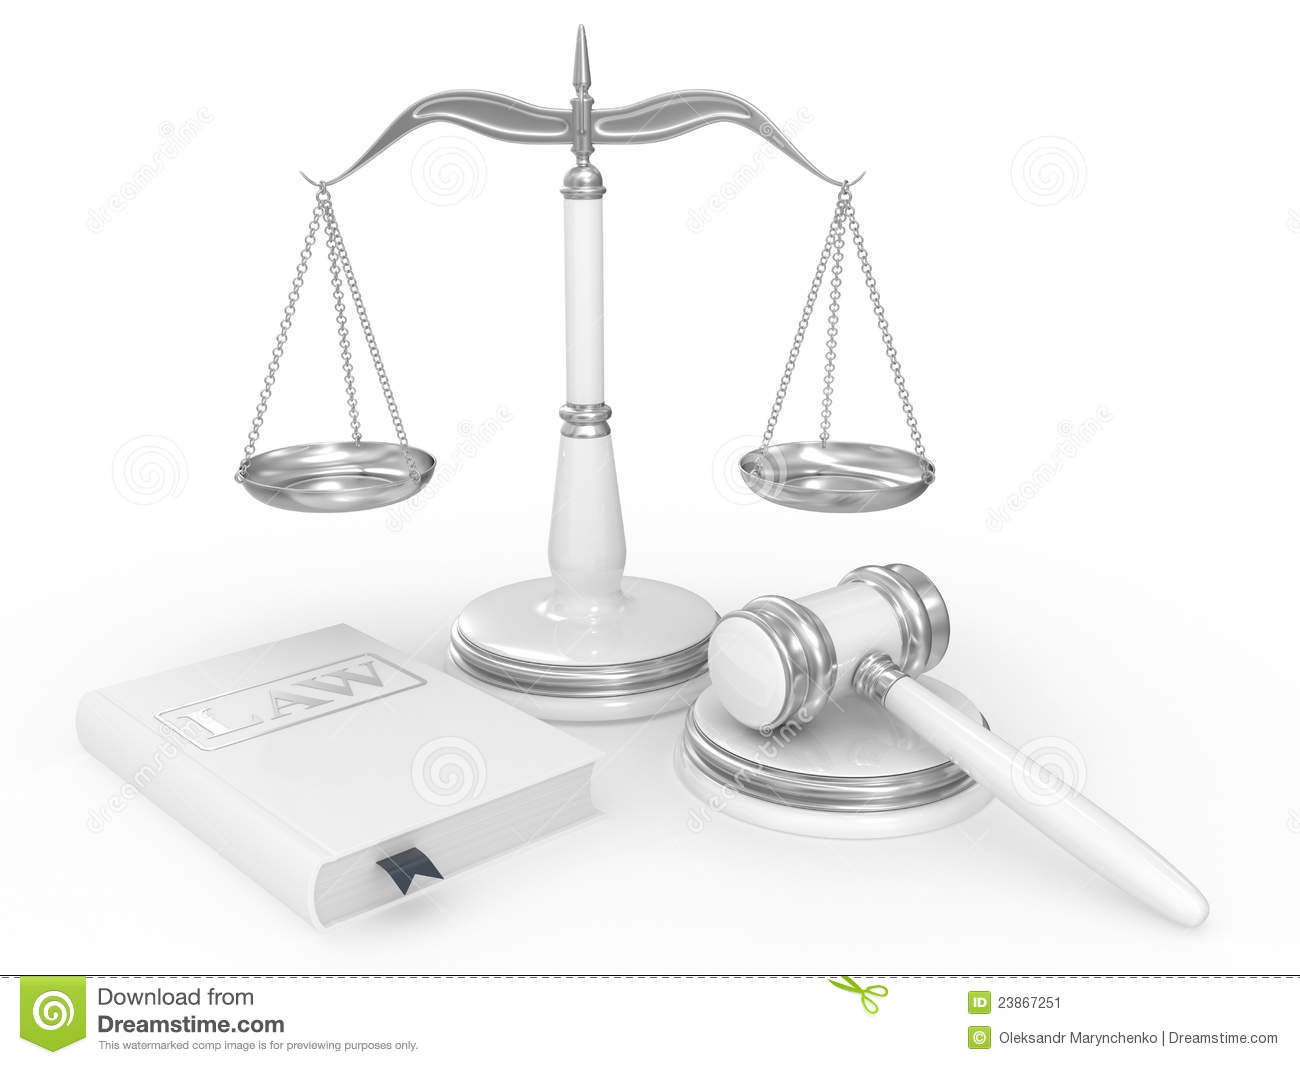 law scale and gavel - photo #16